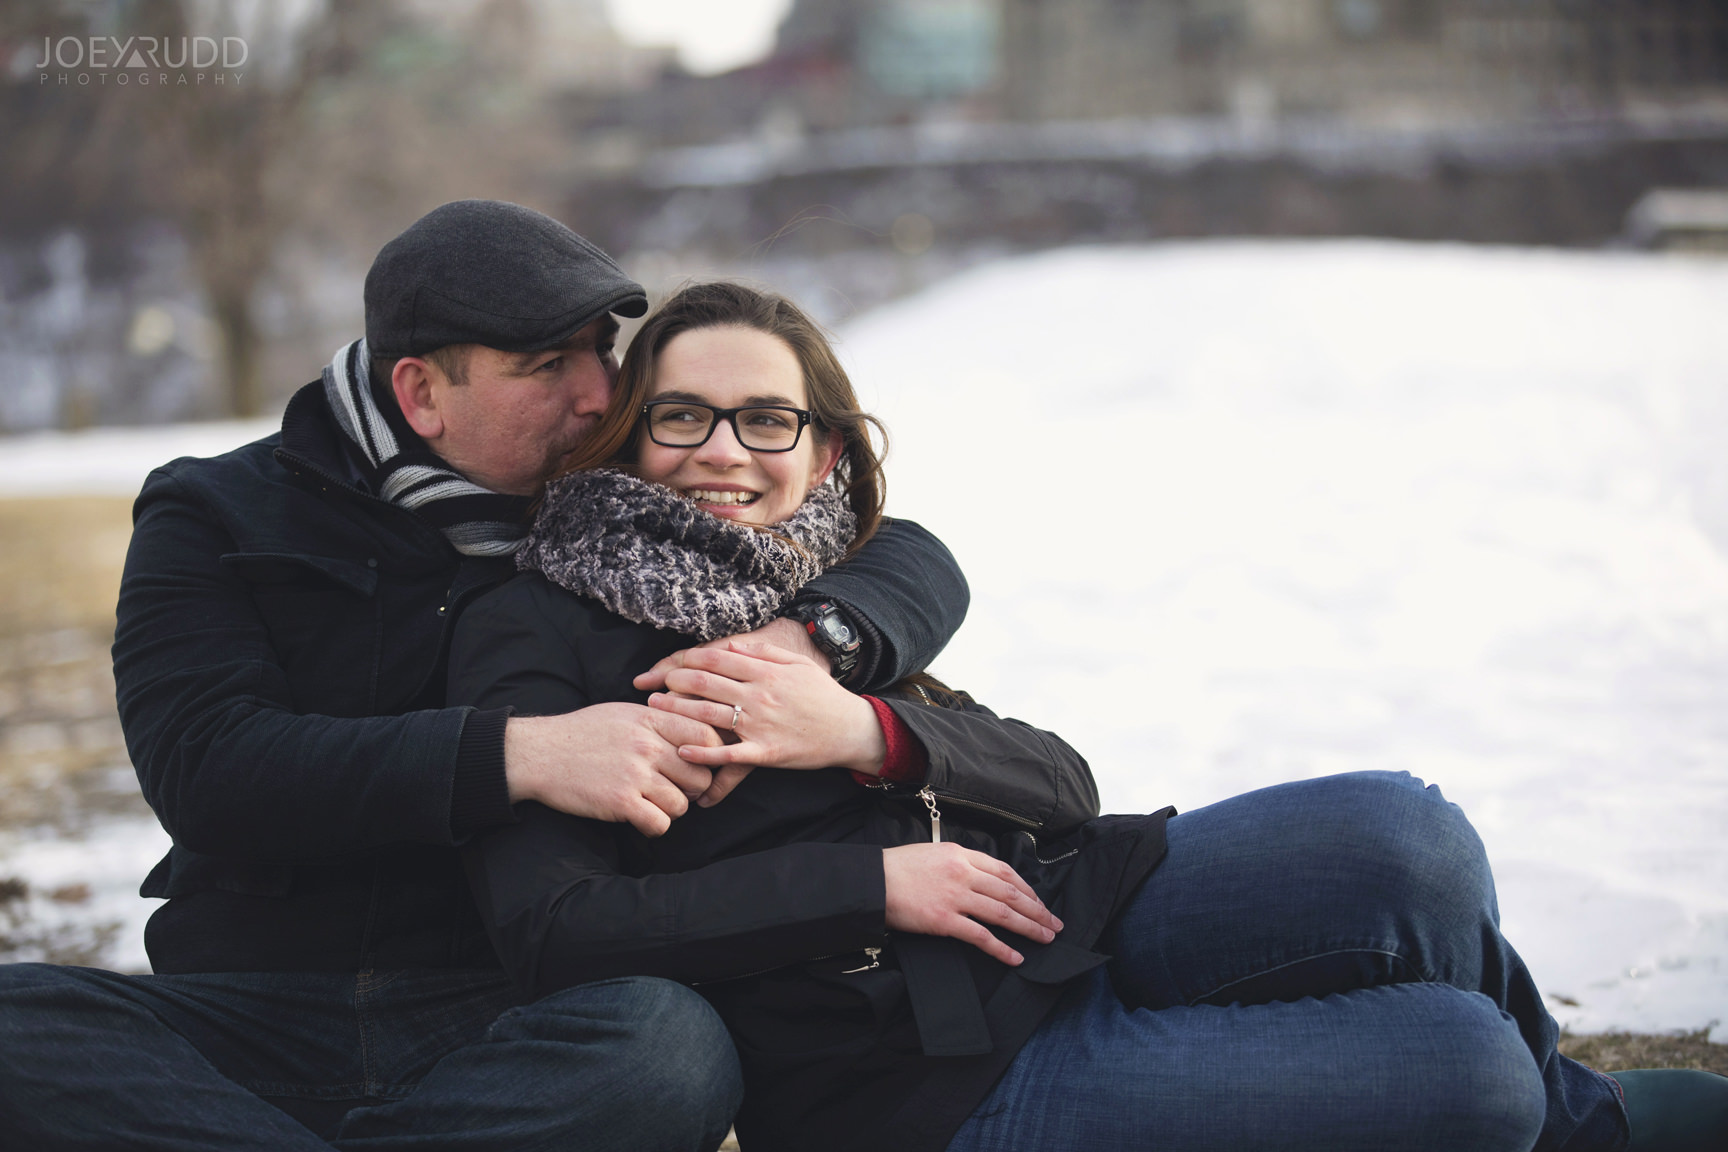 winter engagement at major's hill park by ottawa wedding photographer joey rudd photography parliament